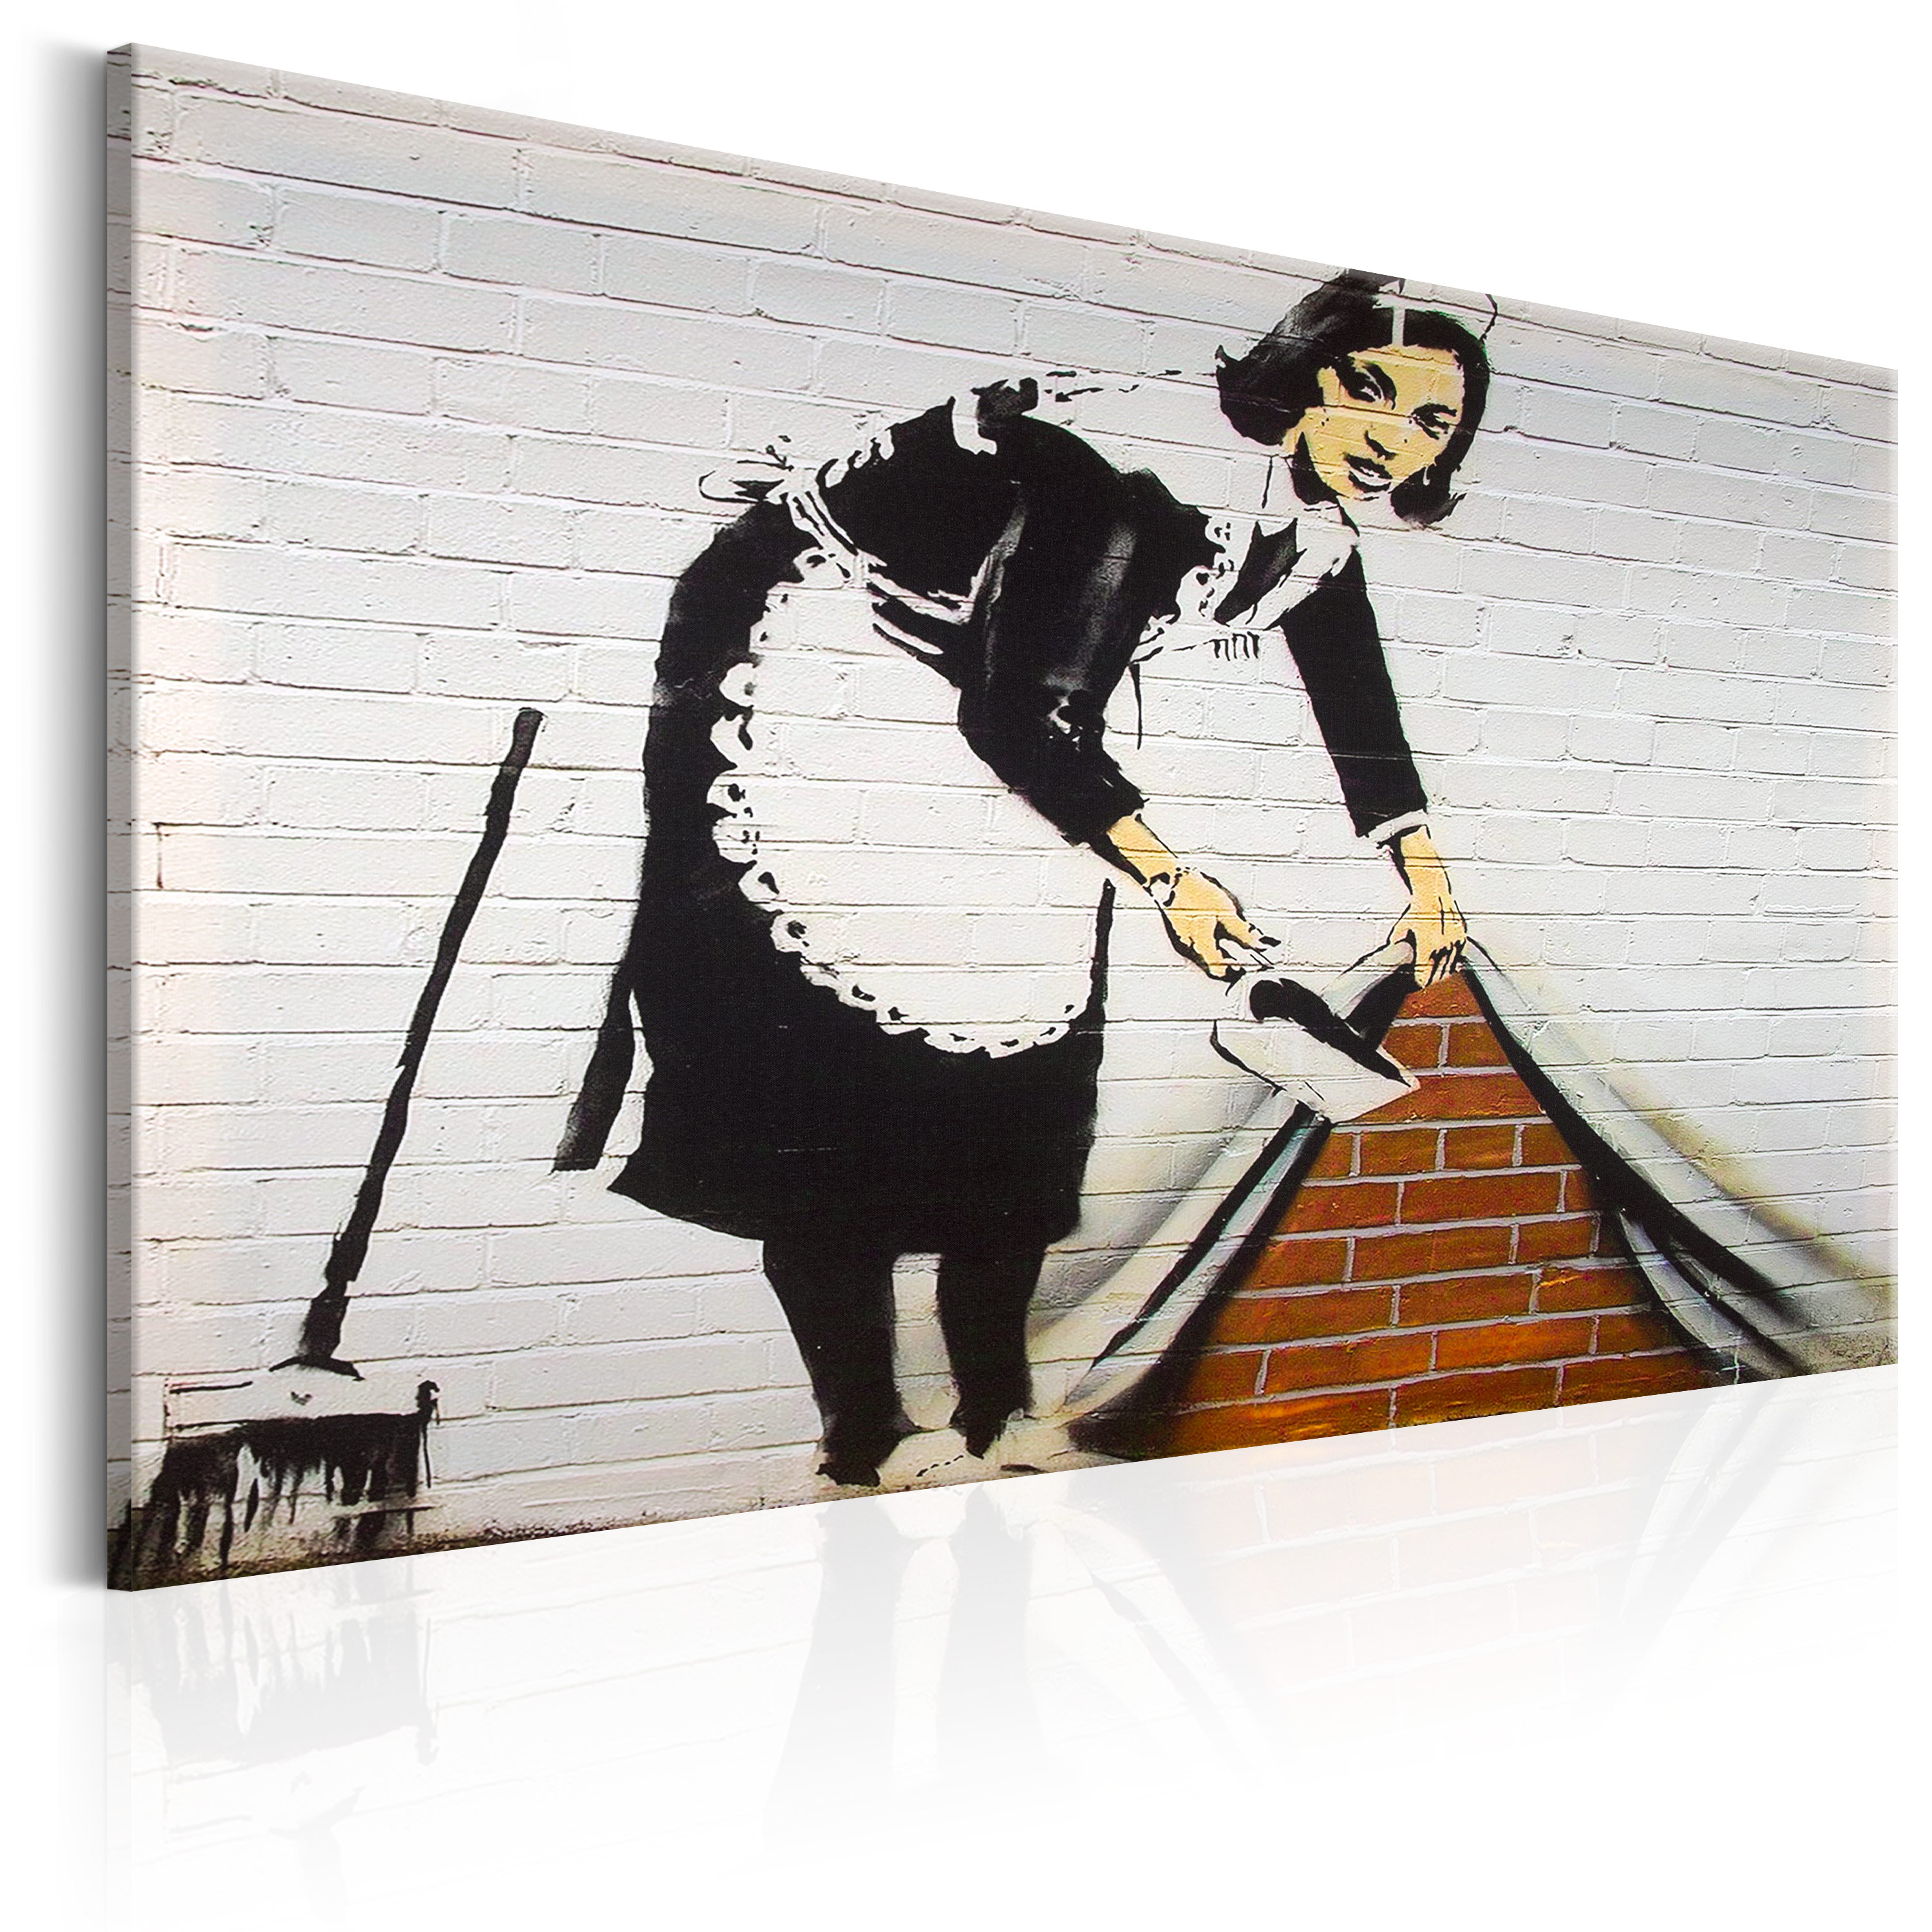 leinwand bilder xxl fertig aufgespannt bild banksy street art i c 0021 b a ebay. Black Bedroom Furniture Sets. Home Design Ideas